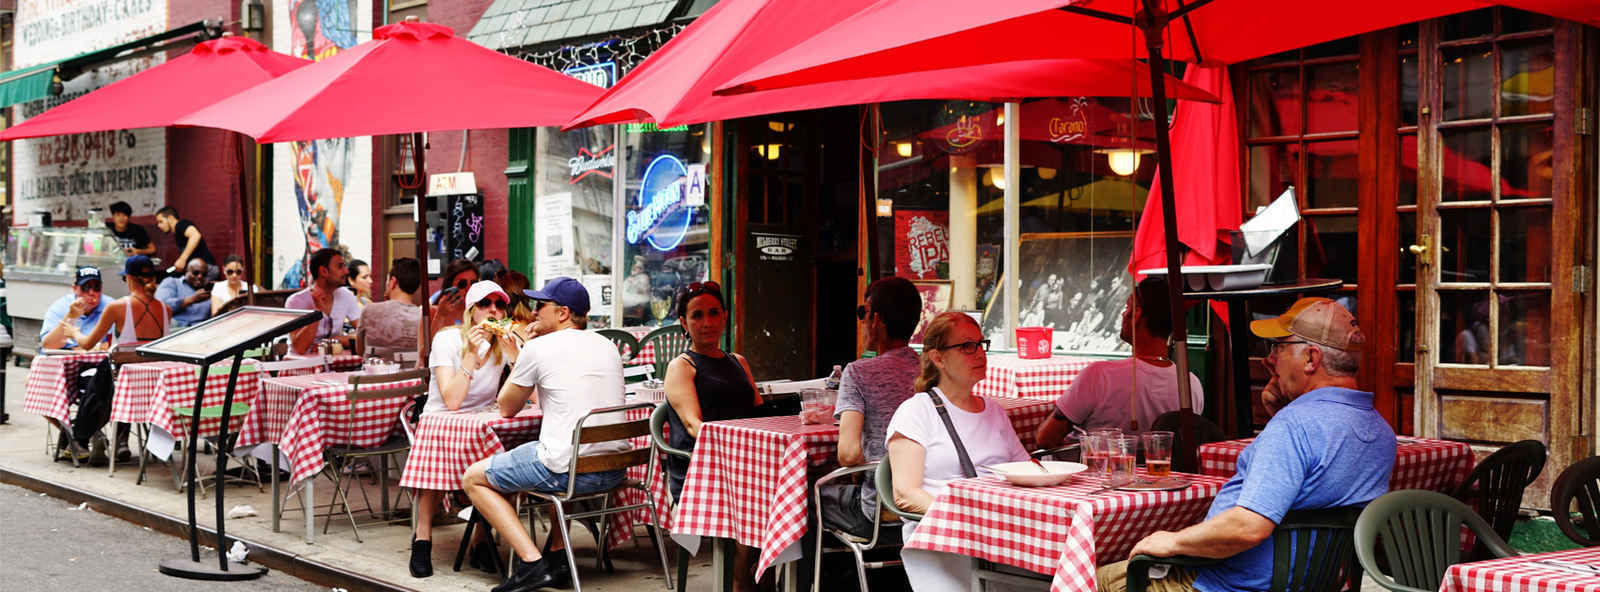 Diners at outdoor cafe in Little Italy, New York